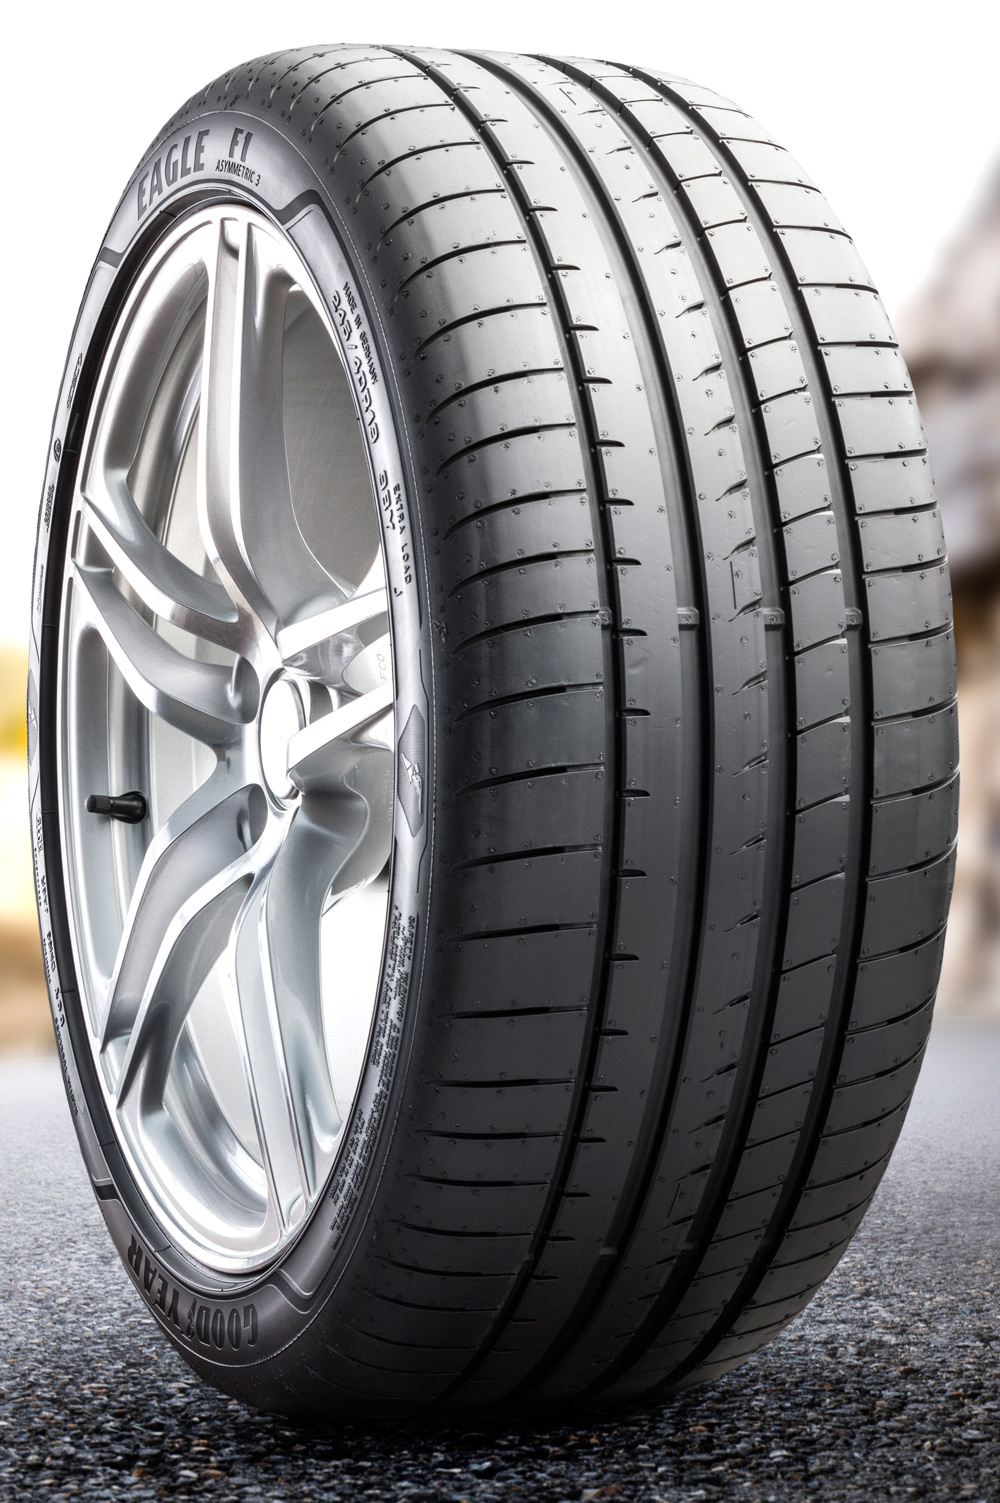 goodyear tyre Goodyear tyres at ats euromaster, including eagle f1 & efficient grip models  buy online with fitting included at our 330+ centres across the uk.